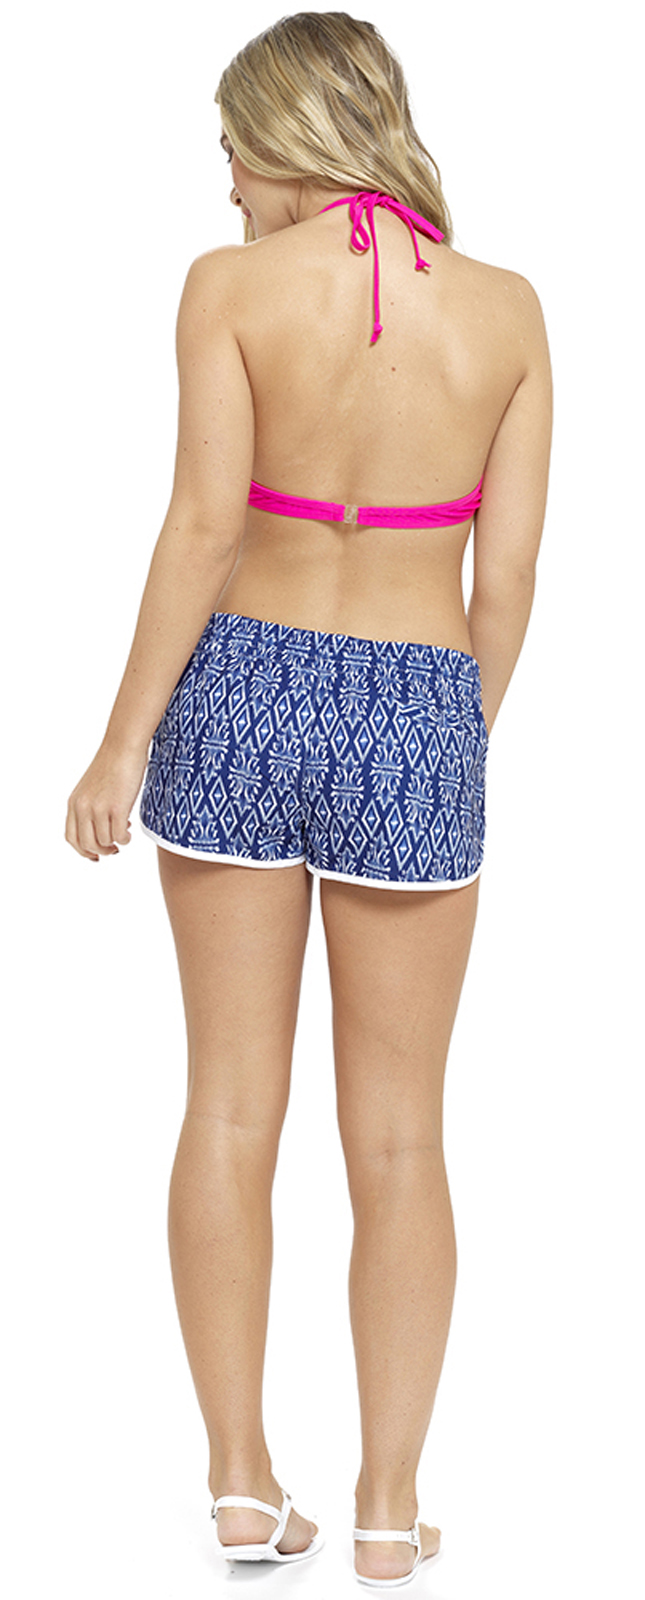 Women's Swimsuit Bottoms. Swim Short. Bikini. High Waisted Bikini. Swim Skirt. Plus Size Swim Bottoms. Our line of women's bathing suit bottoms includes various styles, such as women's high waist bikini bottoms. We also have all the coordinating colors you need, like women's pink bikini bottoms. We cover all size ranges as well.